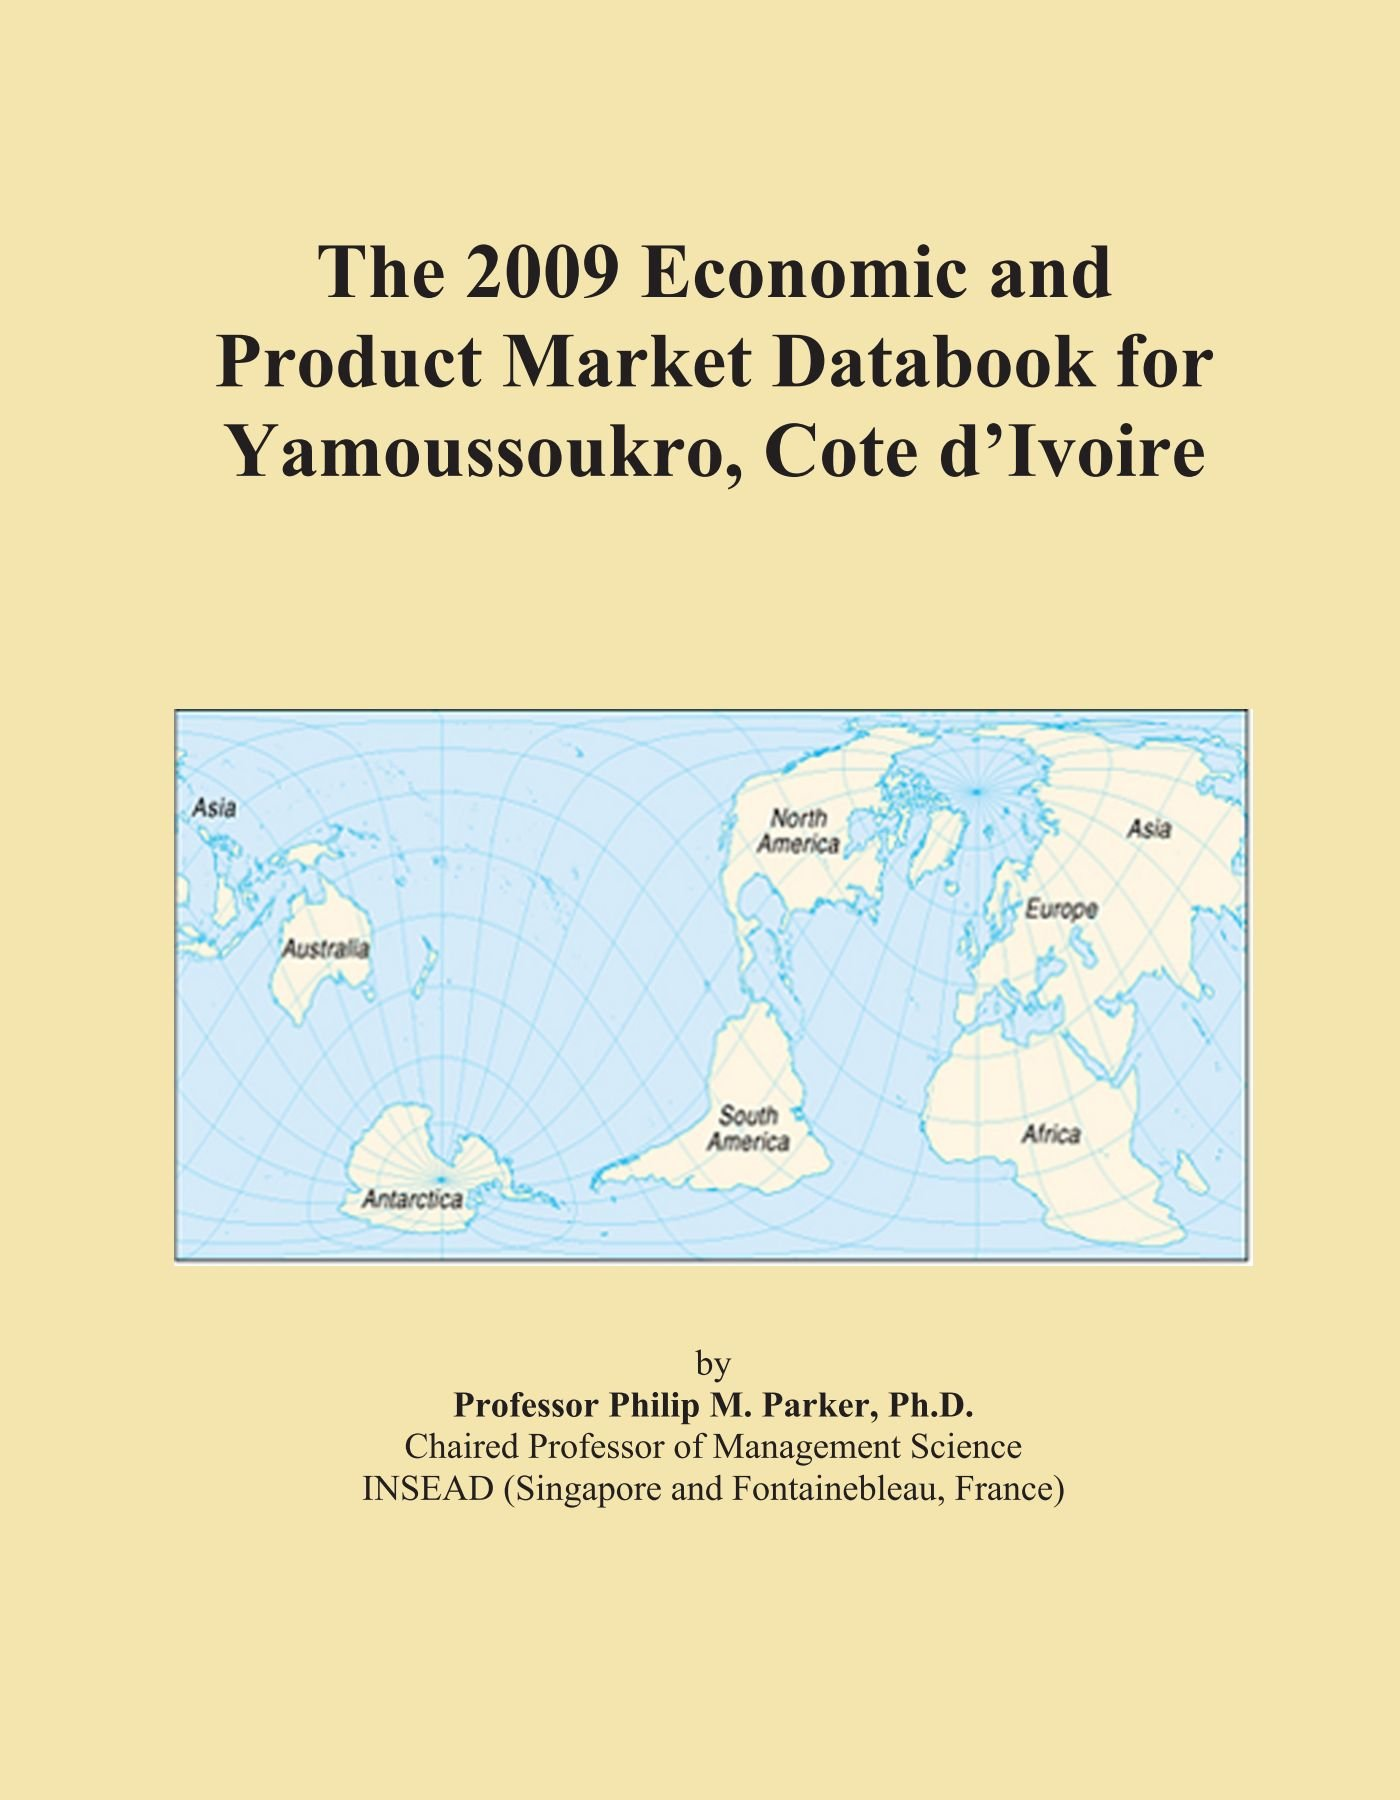 The 2009 Economic and Product Market Databook for Yamoussoukro, Cote d'Ivoire ebook